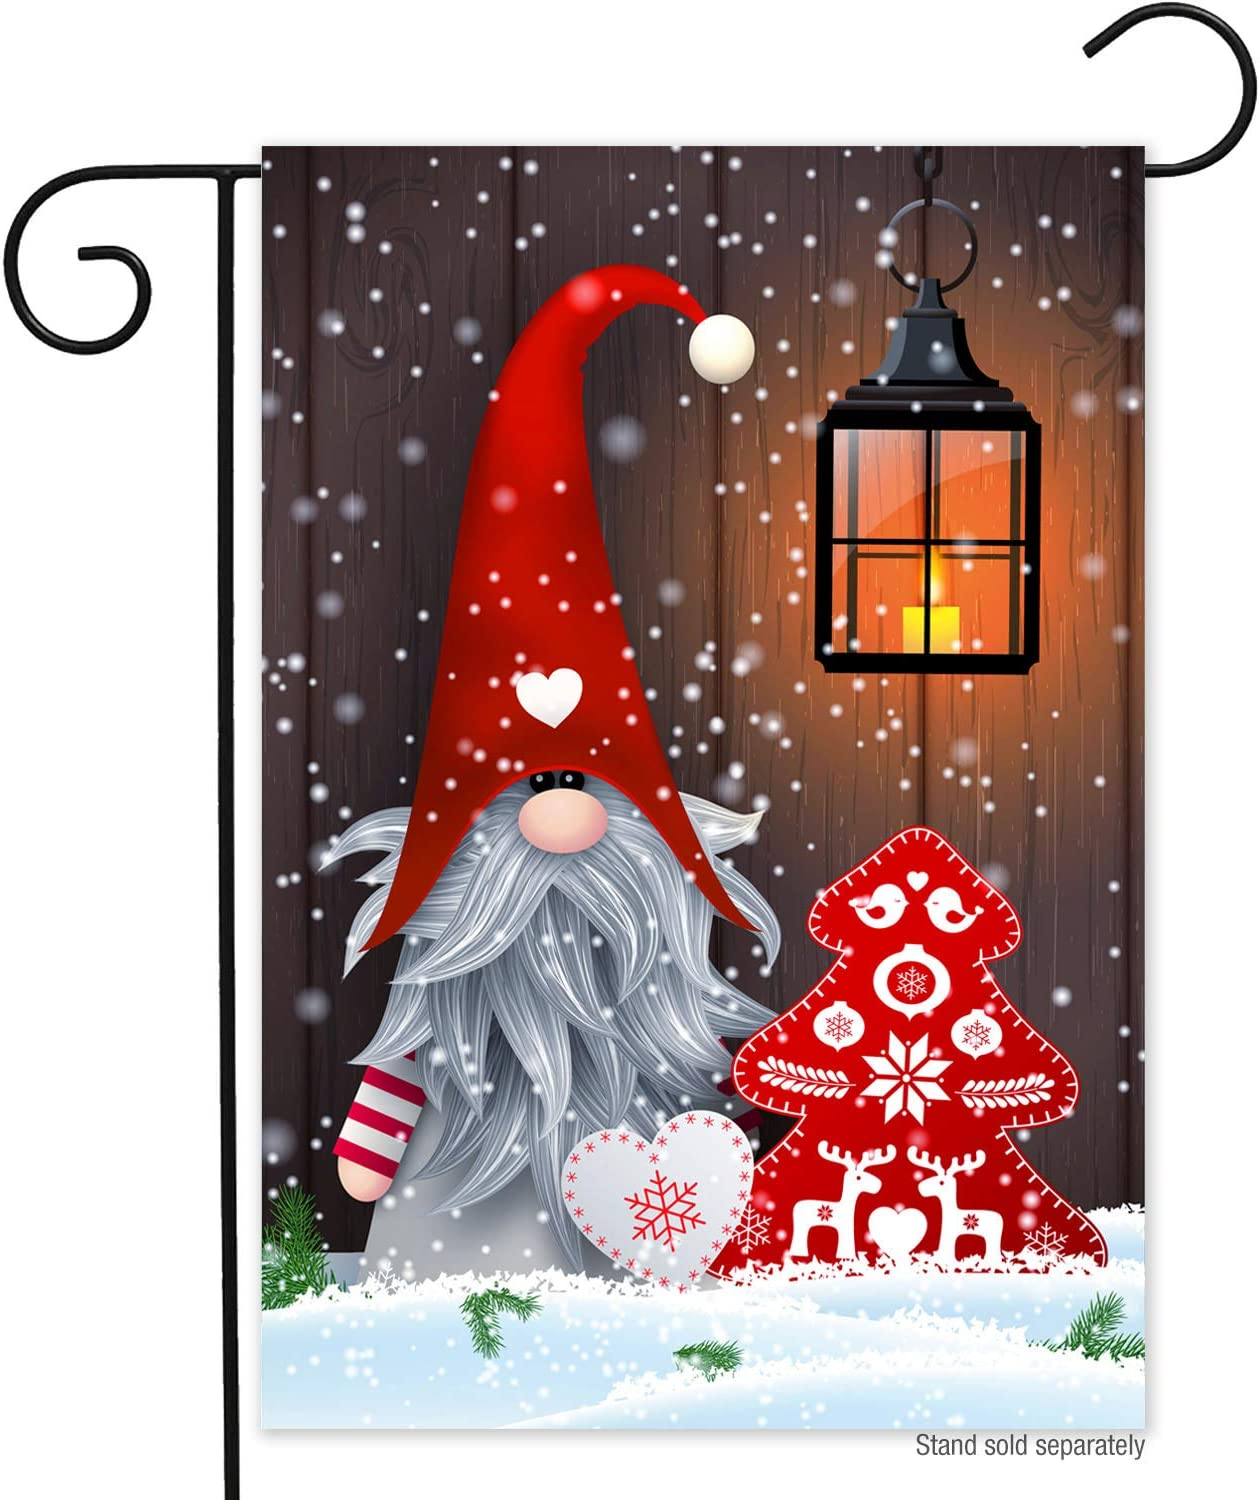 Winter Christmas Gnome Garden Flag-12x18 Double Sided Holiday Xmas Snowflak Seasonal Vertical Garden Yard Flags Banner for Lawn House Christmas Outside Decorations